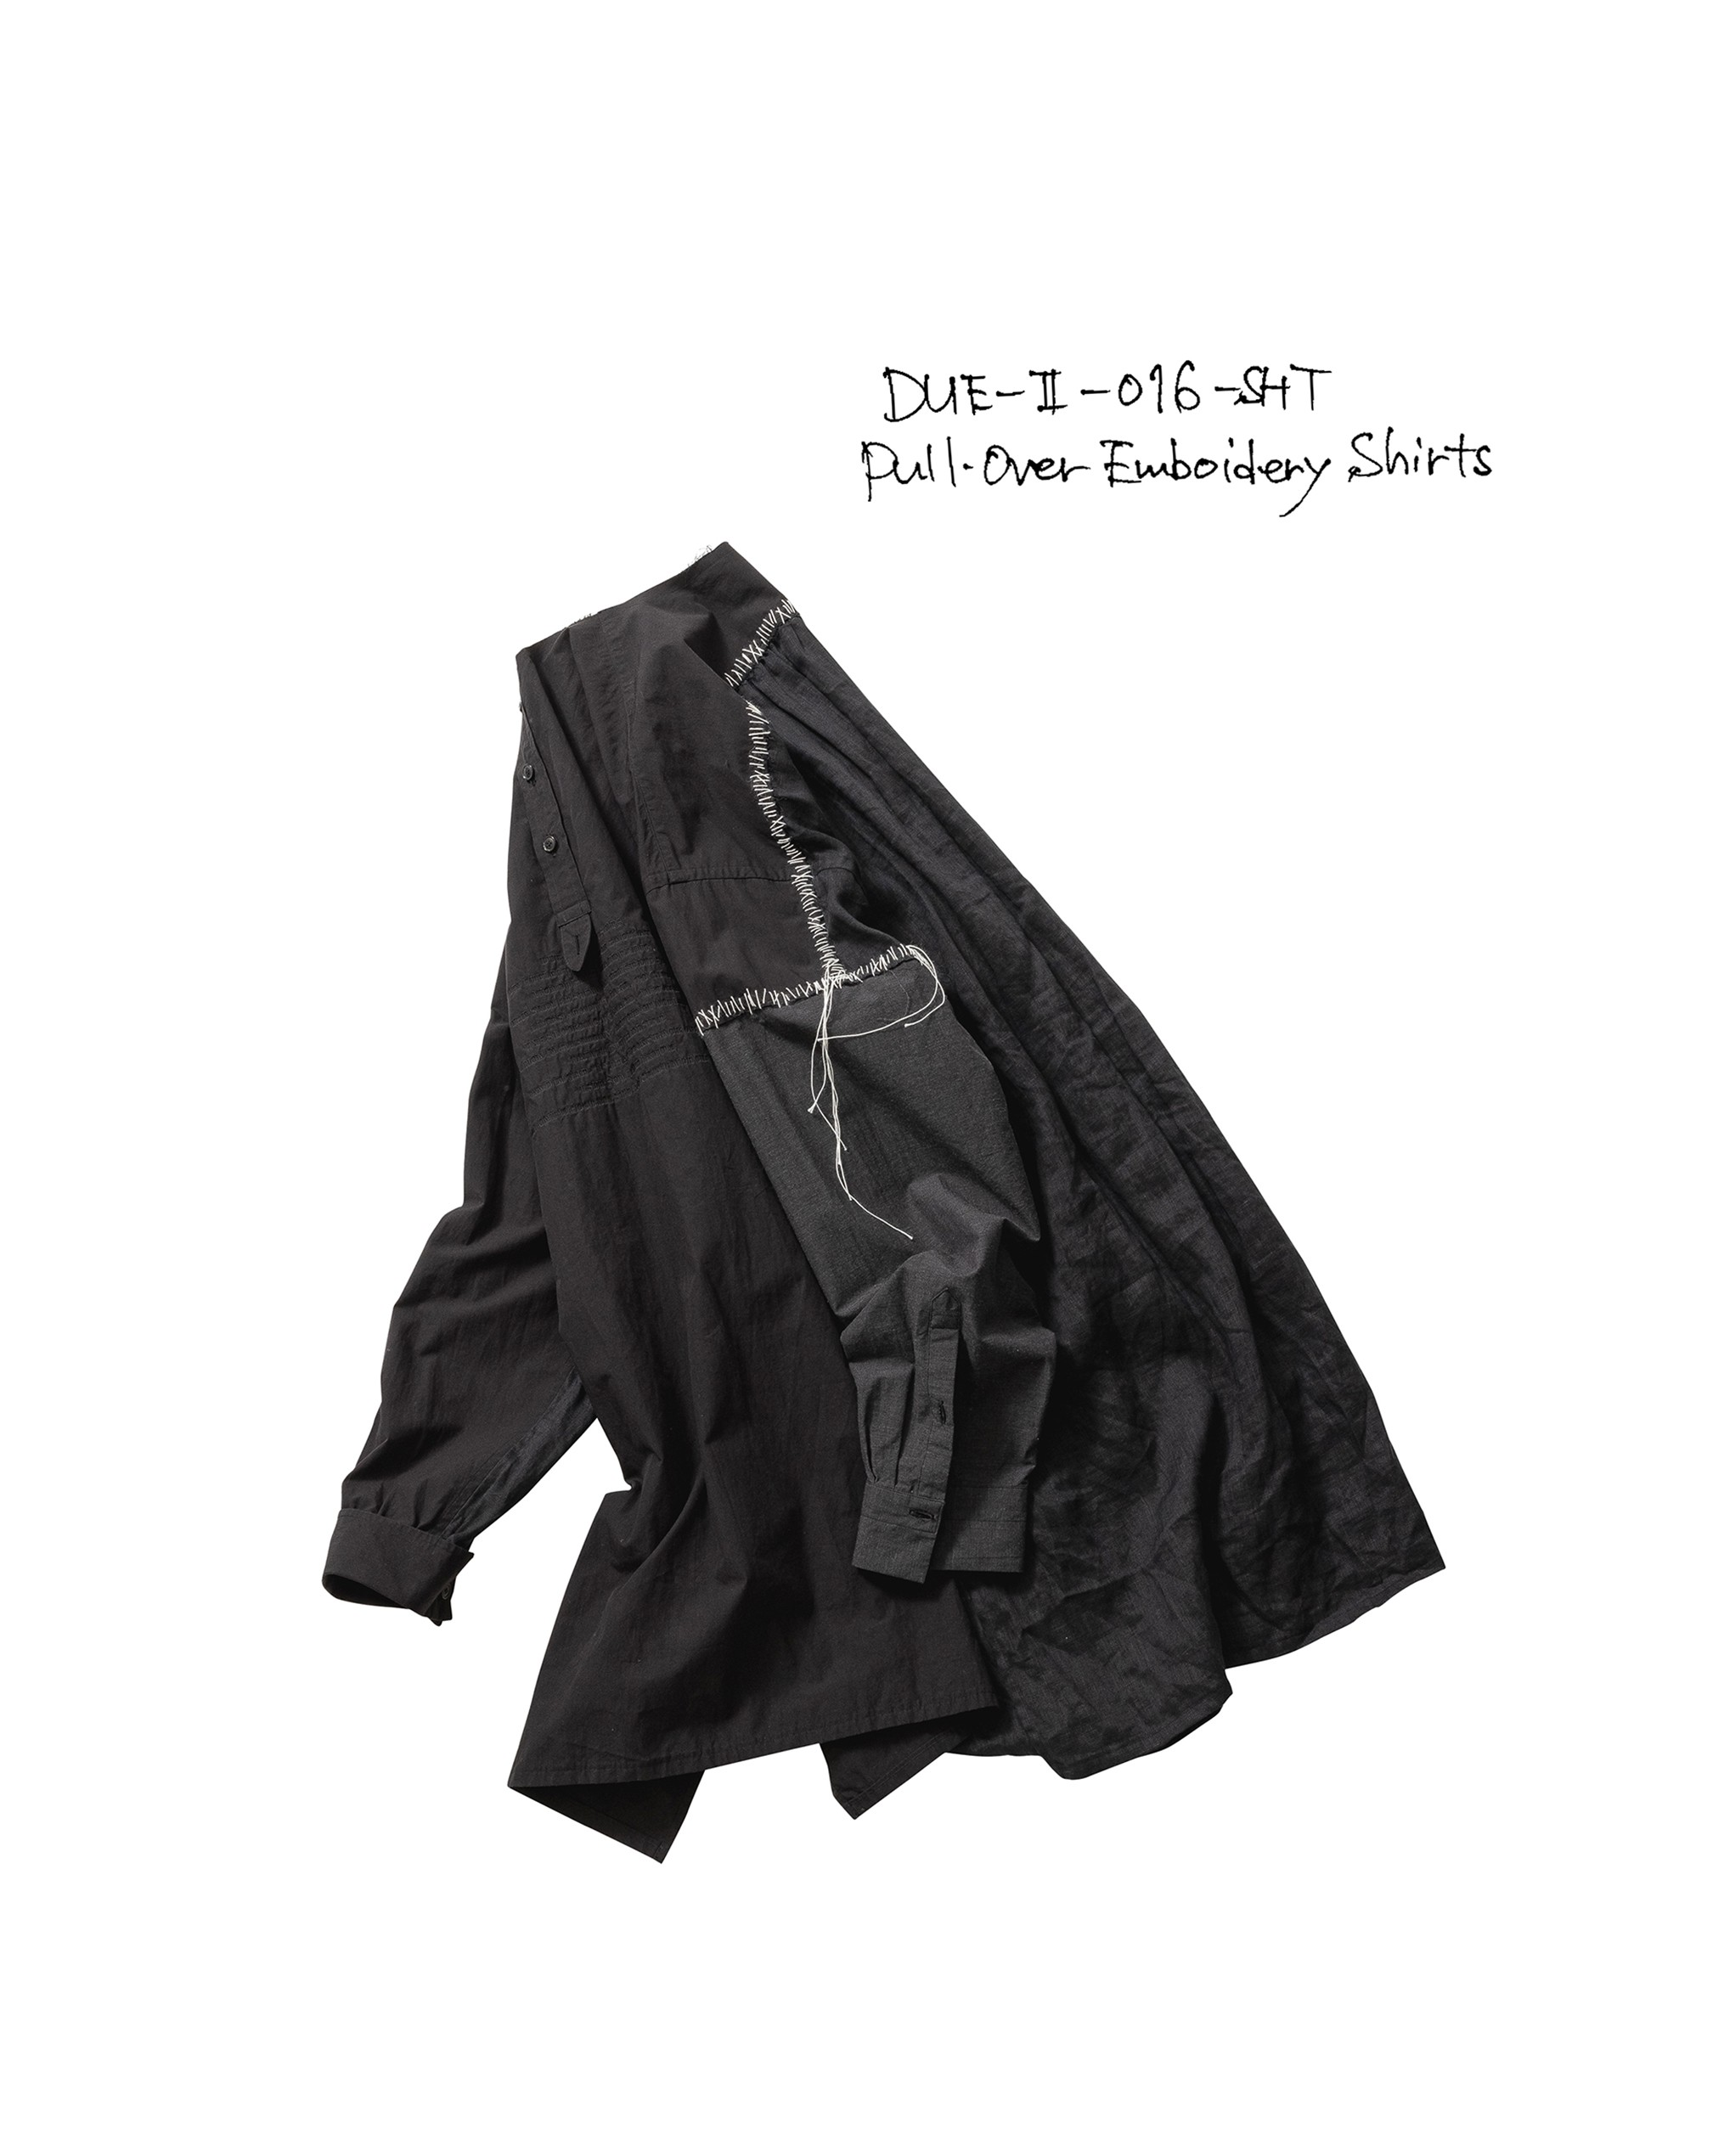 21SS DUE-Ⅱ-016-SHT-BLK PULL-OVER EMBROIDERY SHIRTS